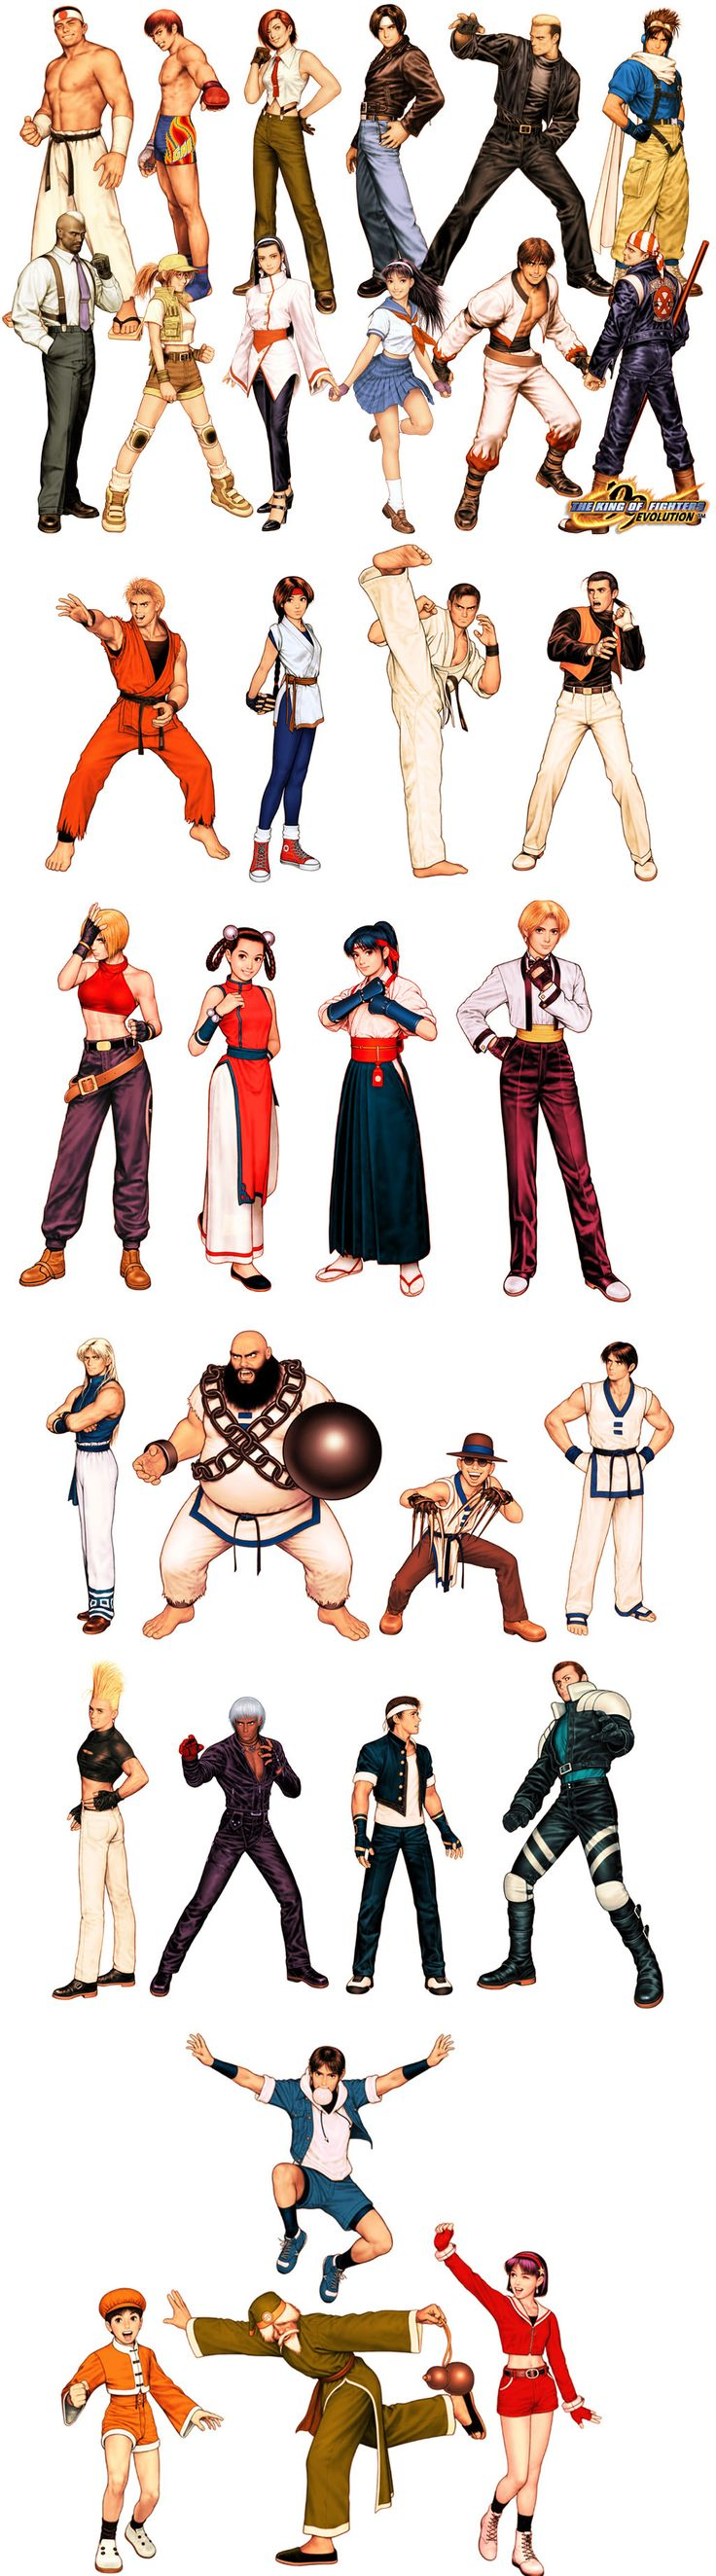 shinkiro character design 2